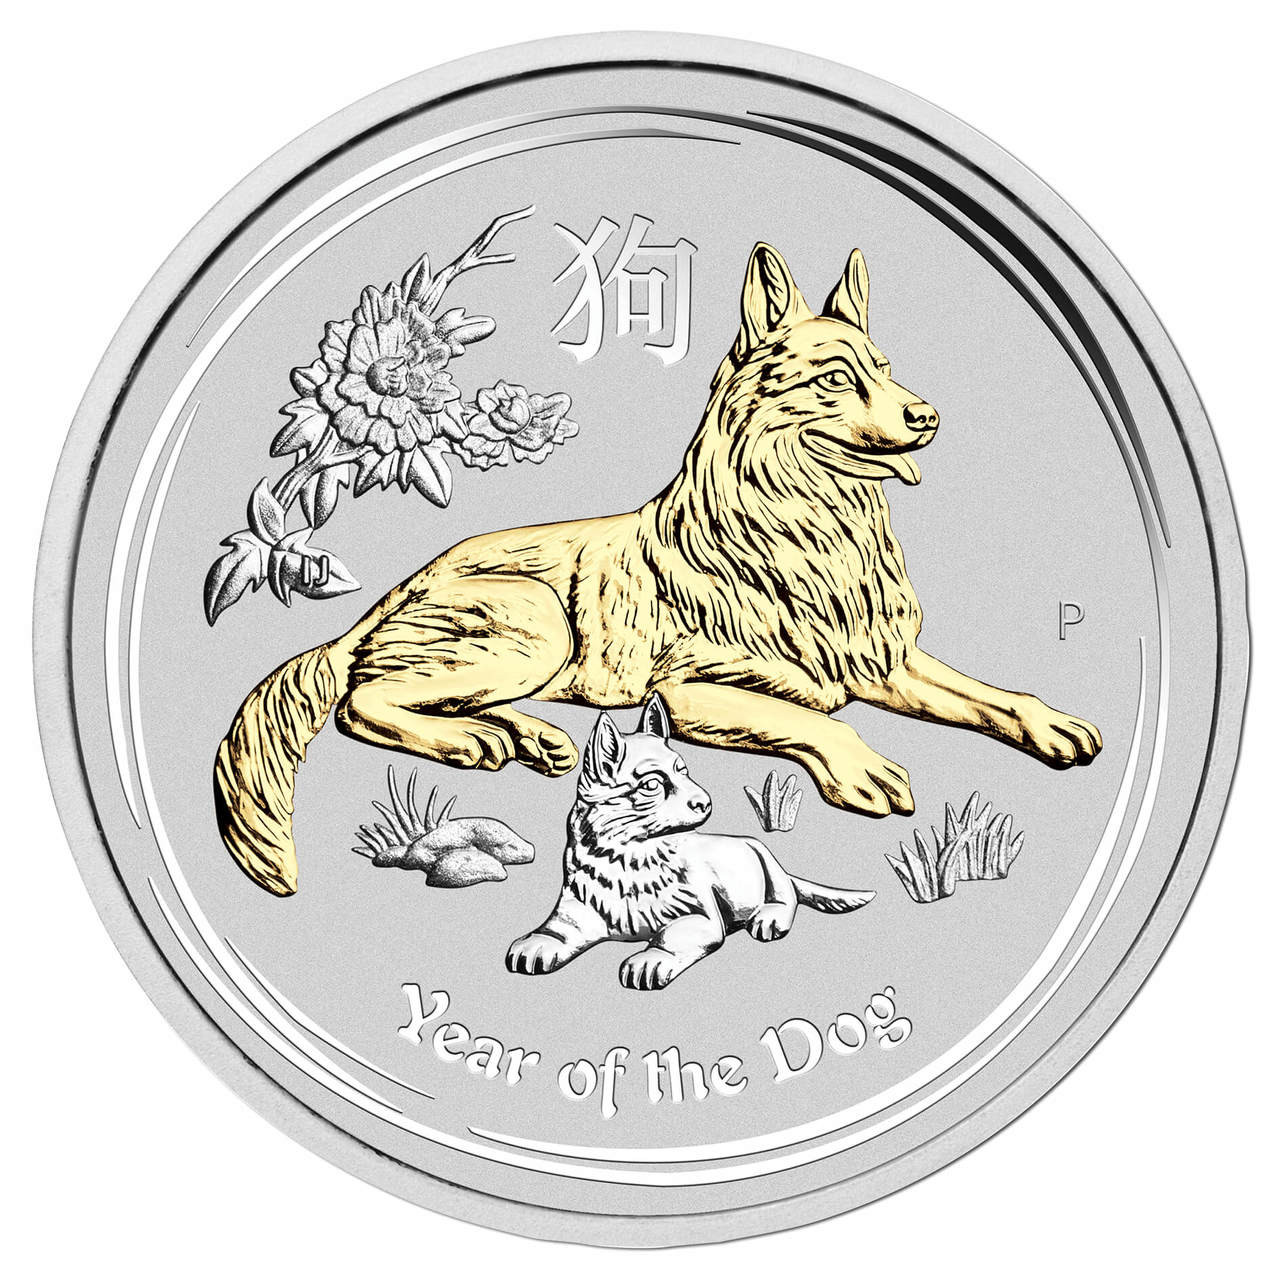 2018 Lunar Year of the Dog $1 Uncirculated Coin